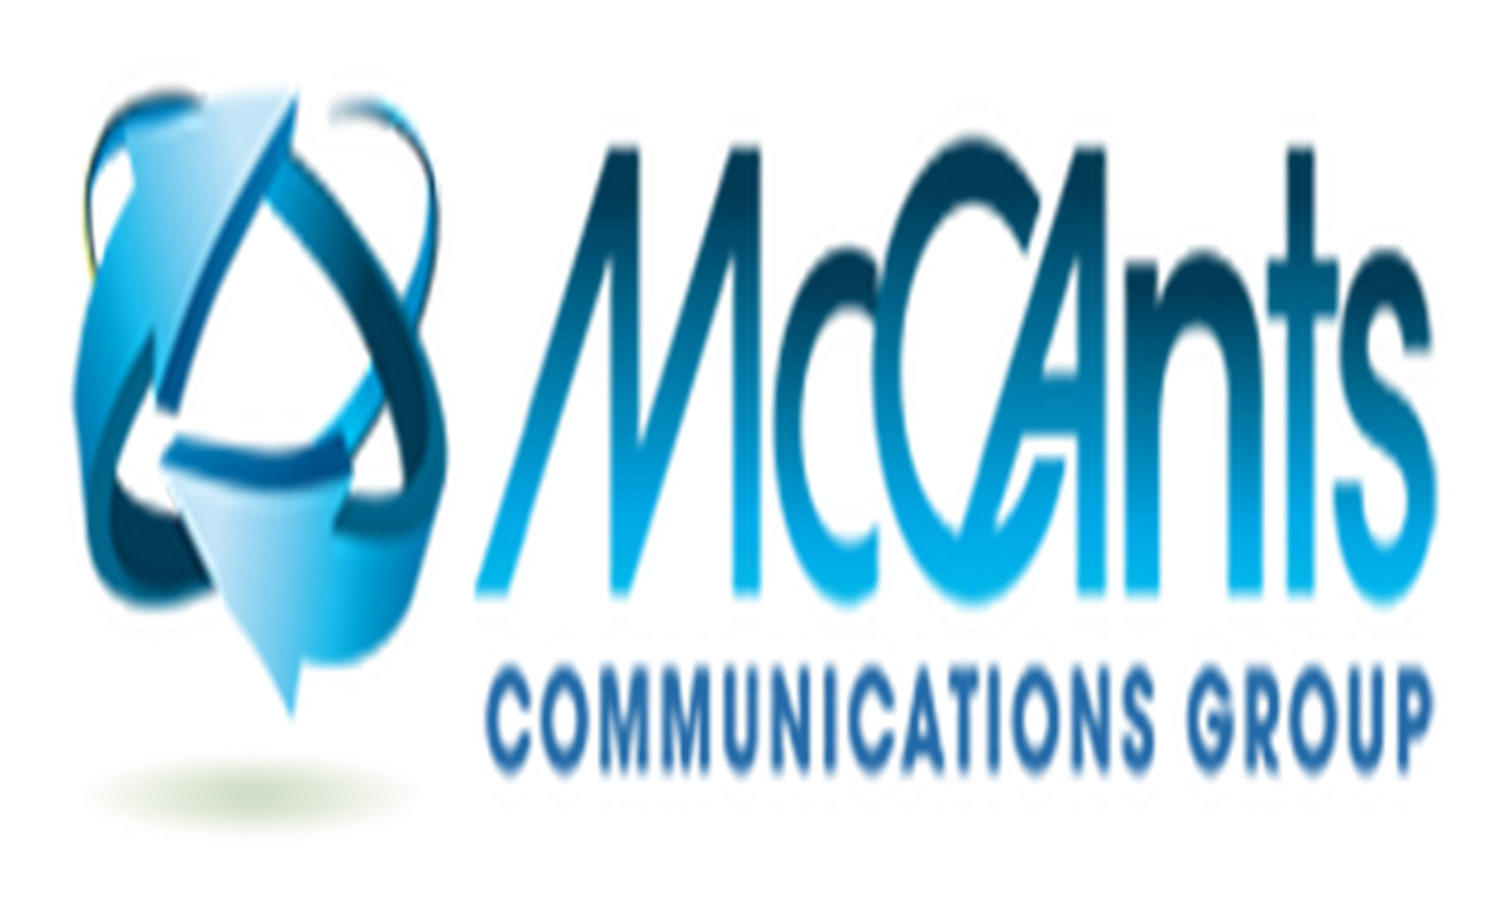 McCants Communications